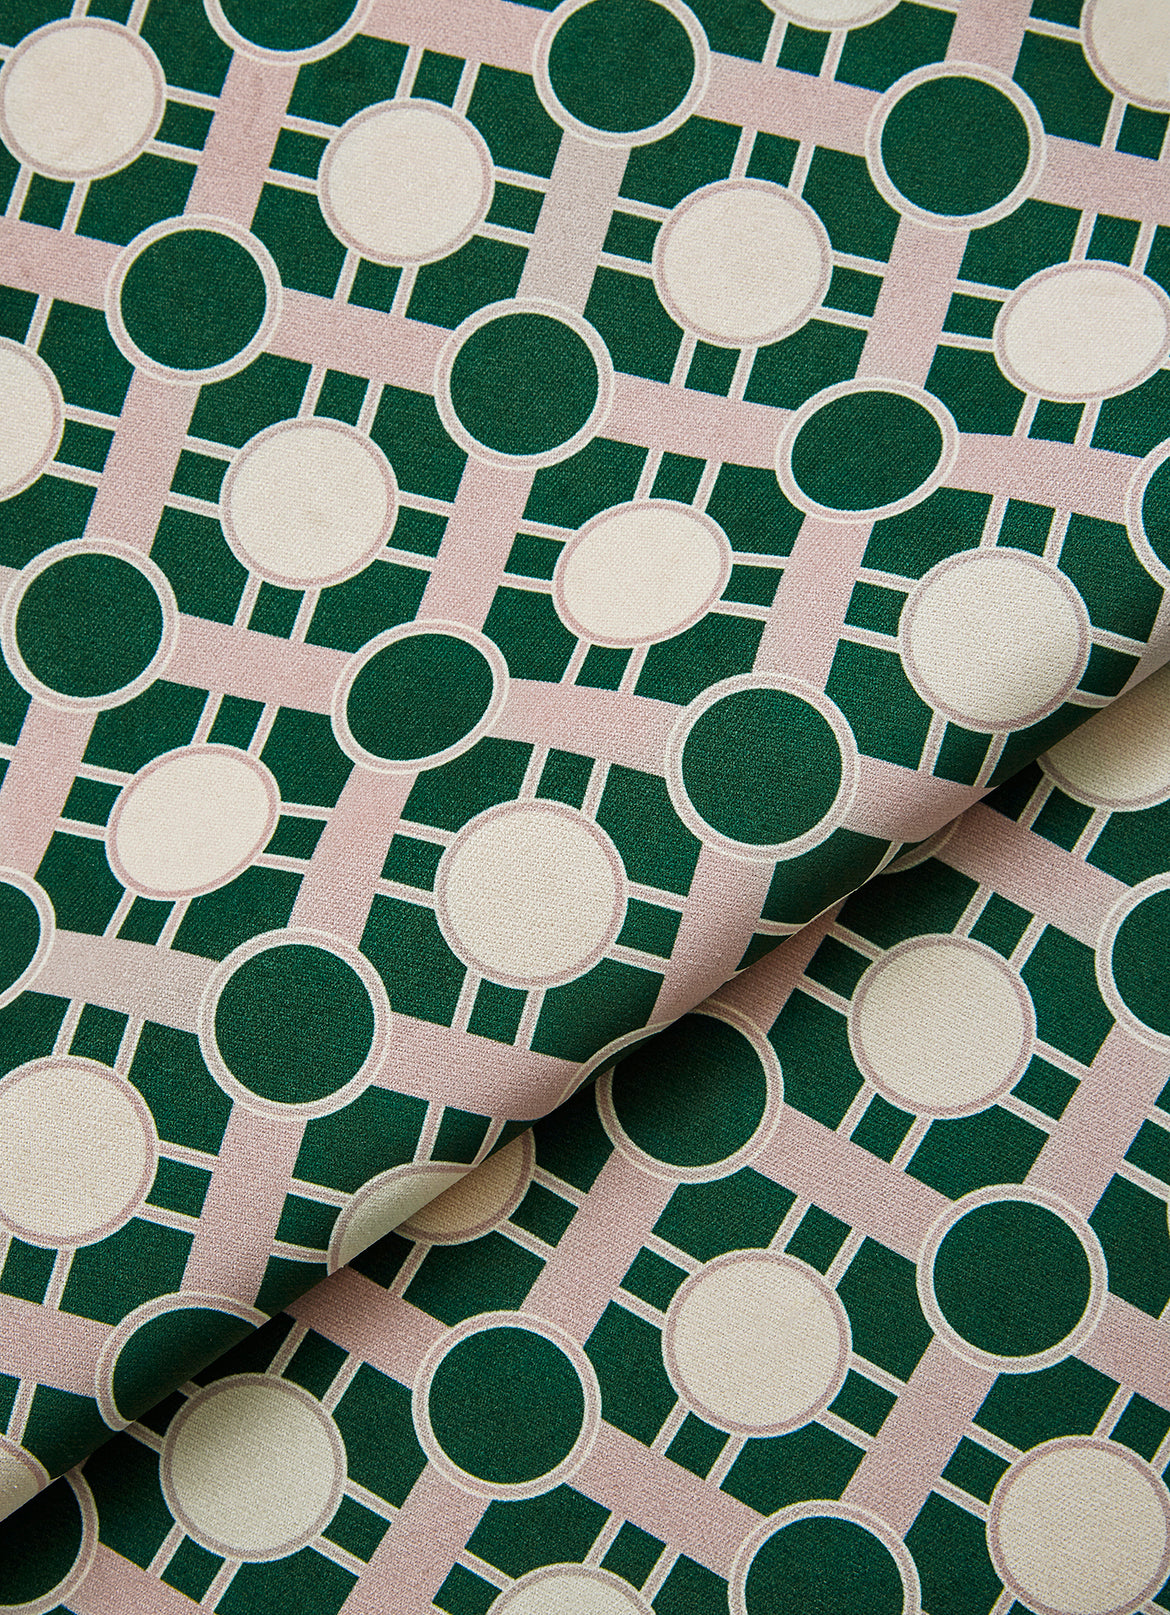 Pipet Design Bernadette Pink and Green printed fabric